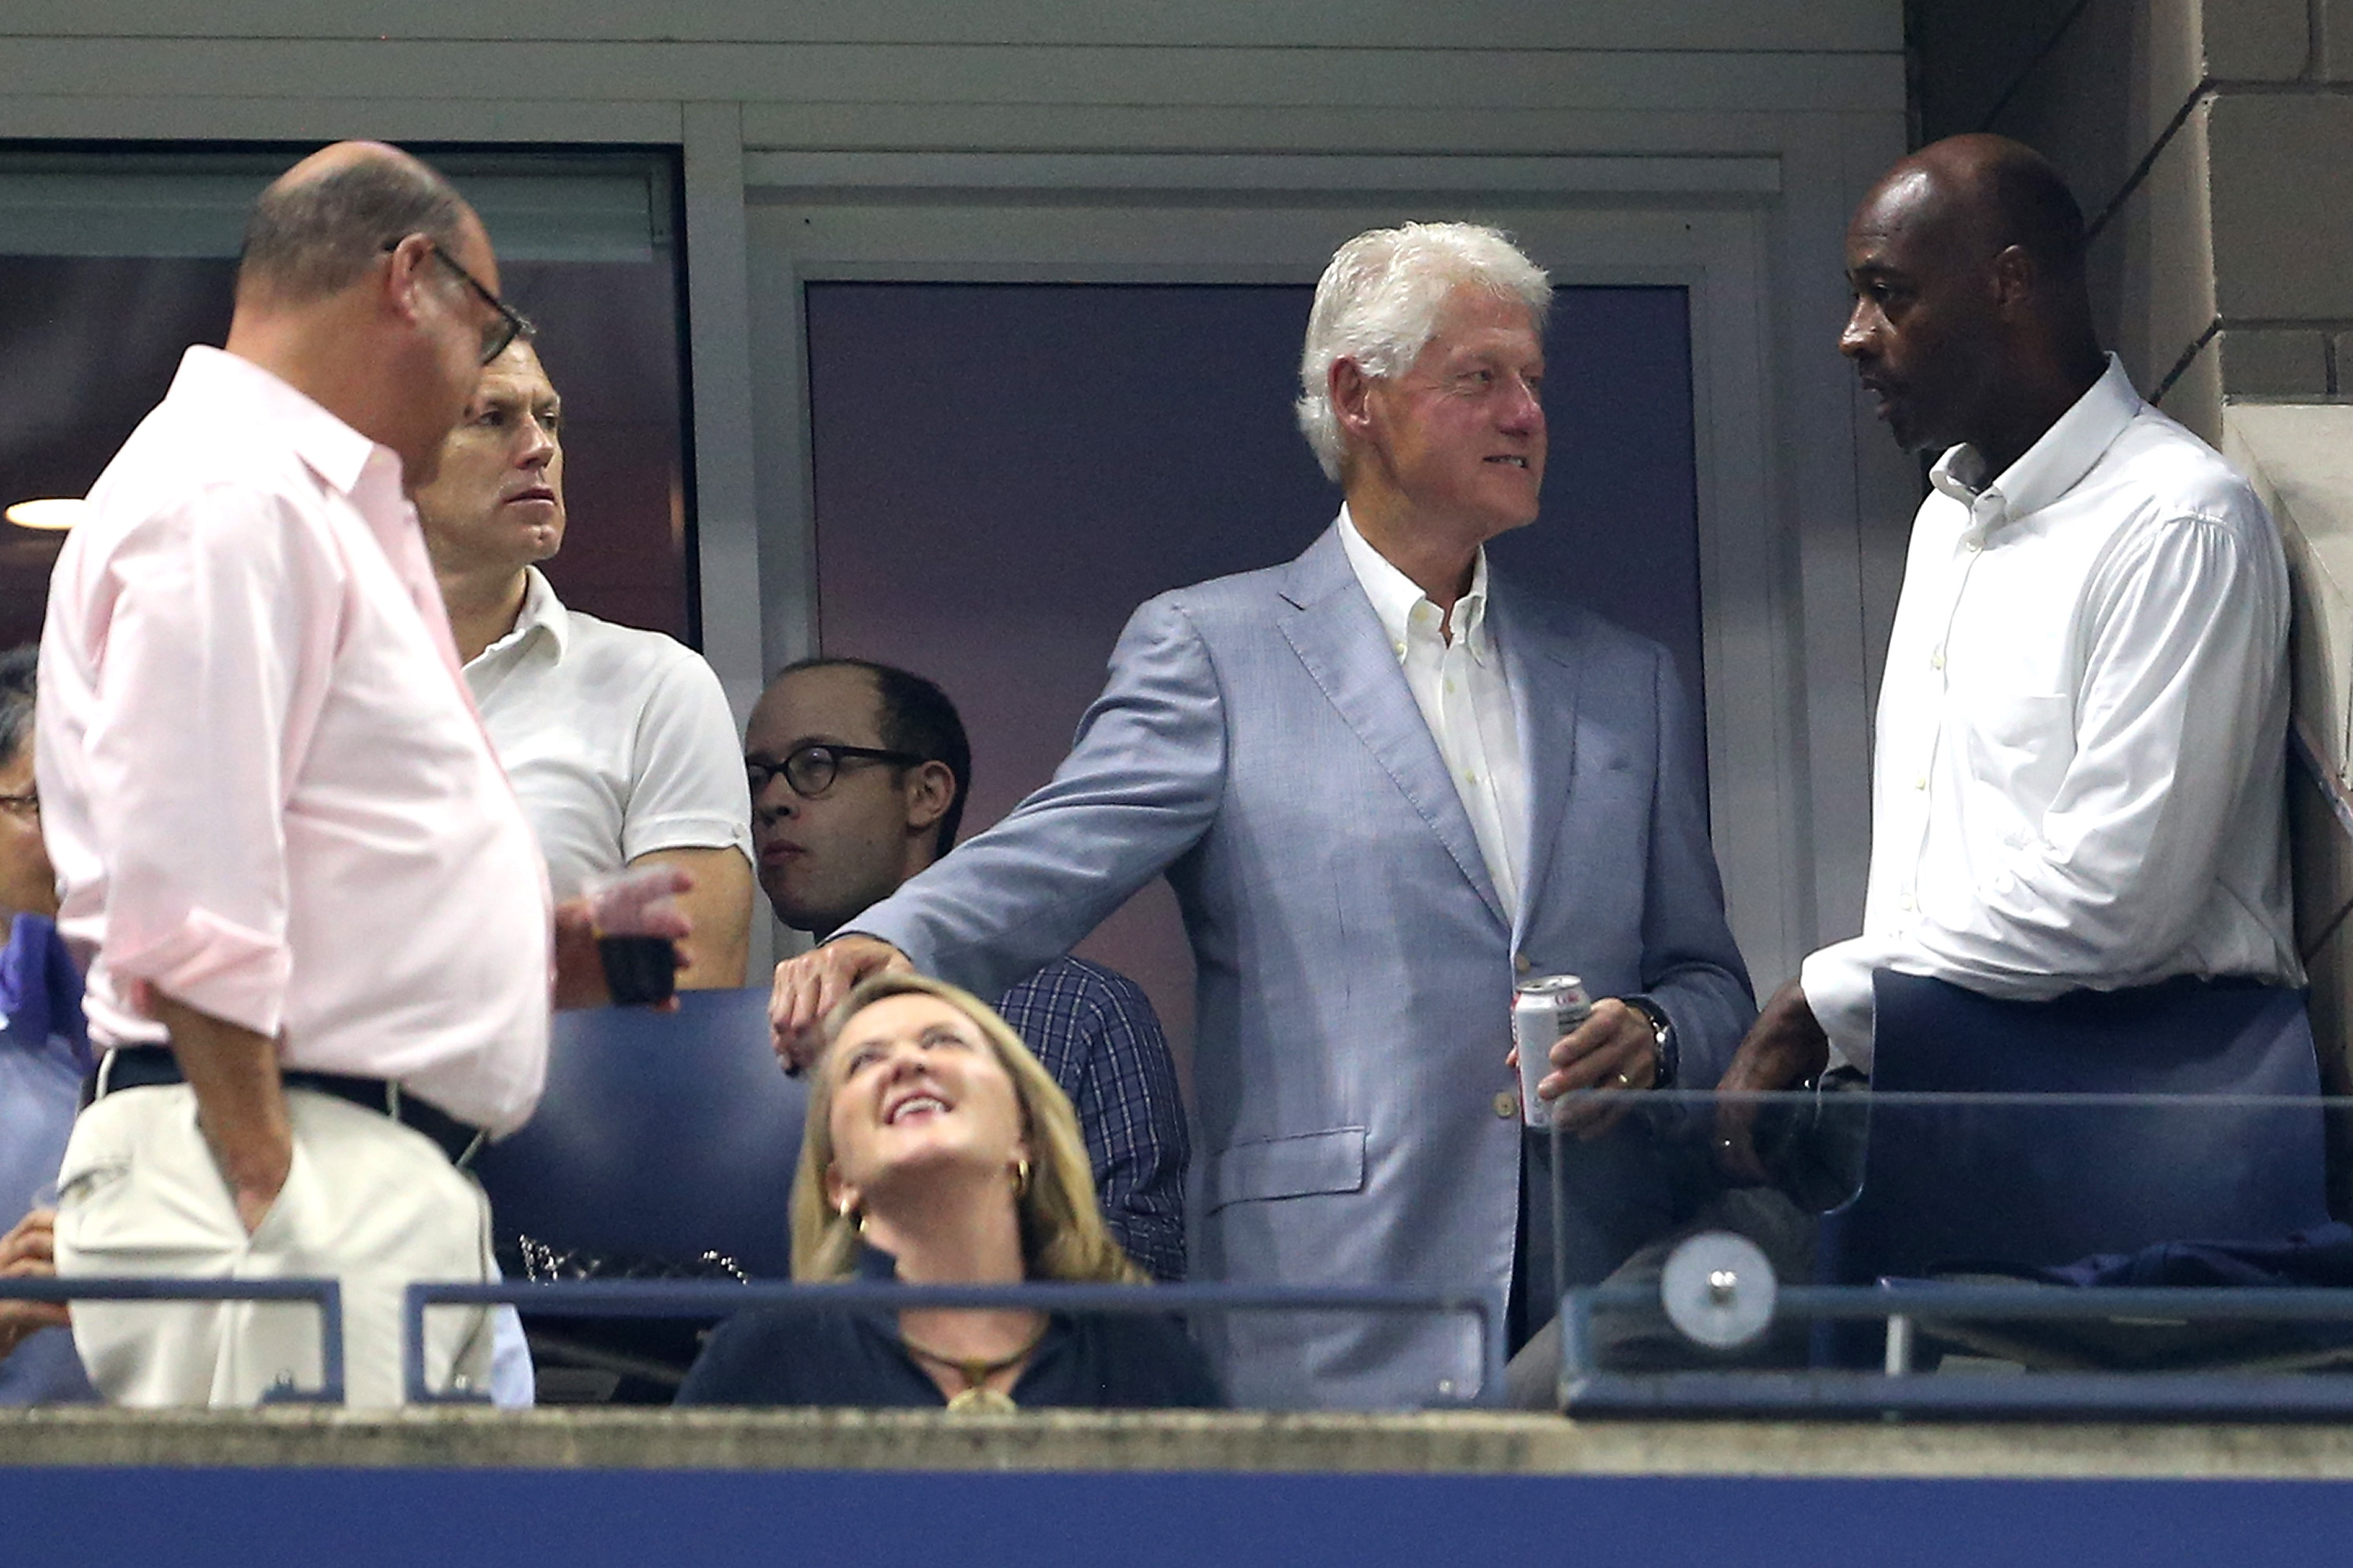 NEW YORK, NY - SEPTEMBER 03: Former President of The United States, Bill Clinton watches on during the men's singles fourth round match between Roger Federer of Switzerland and John Millman of Australia on Day Eight of the 2018 US Open at the USTA Billie Jean King National Tennis Center on September 3, 2018 in the Flushing neighborhood of the Queens borough of New York City. (Photo by Alex Pantling/Getty Images)